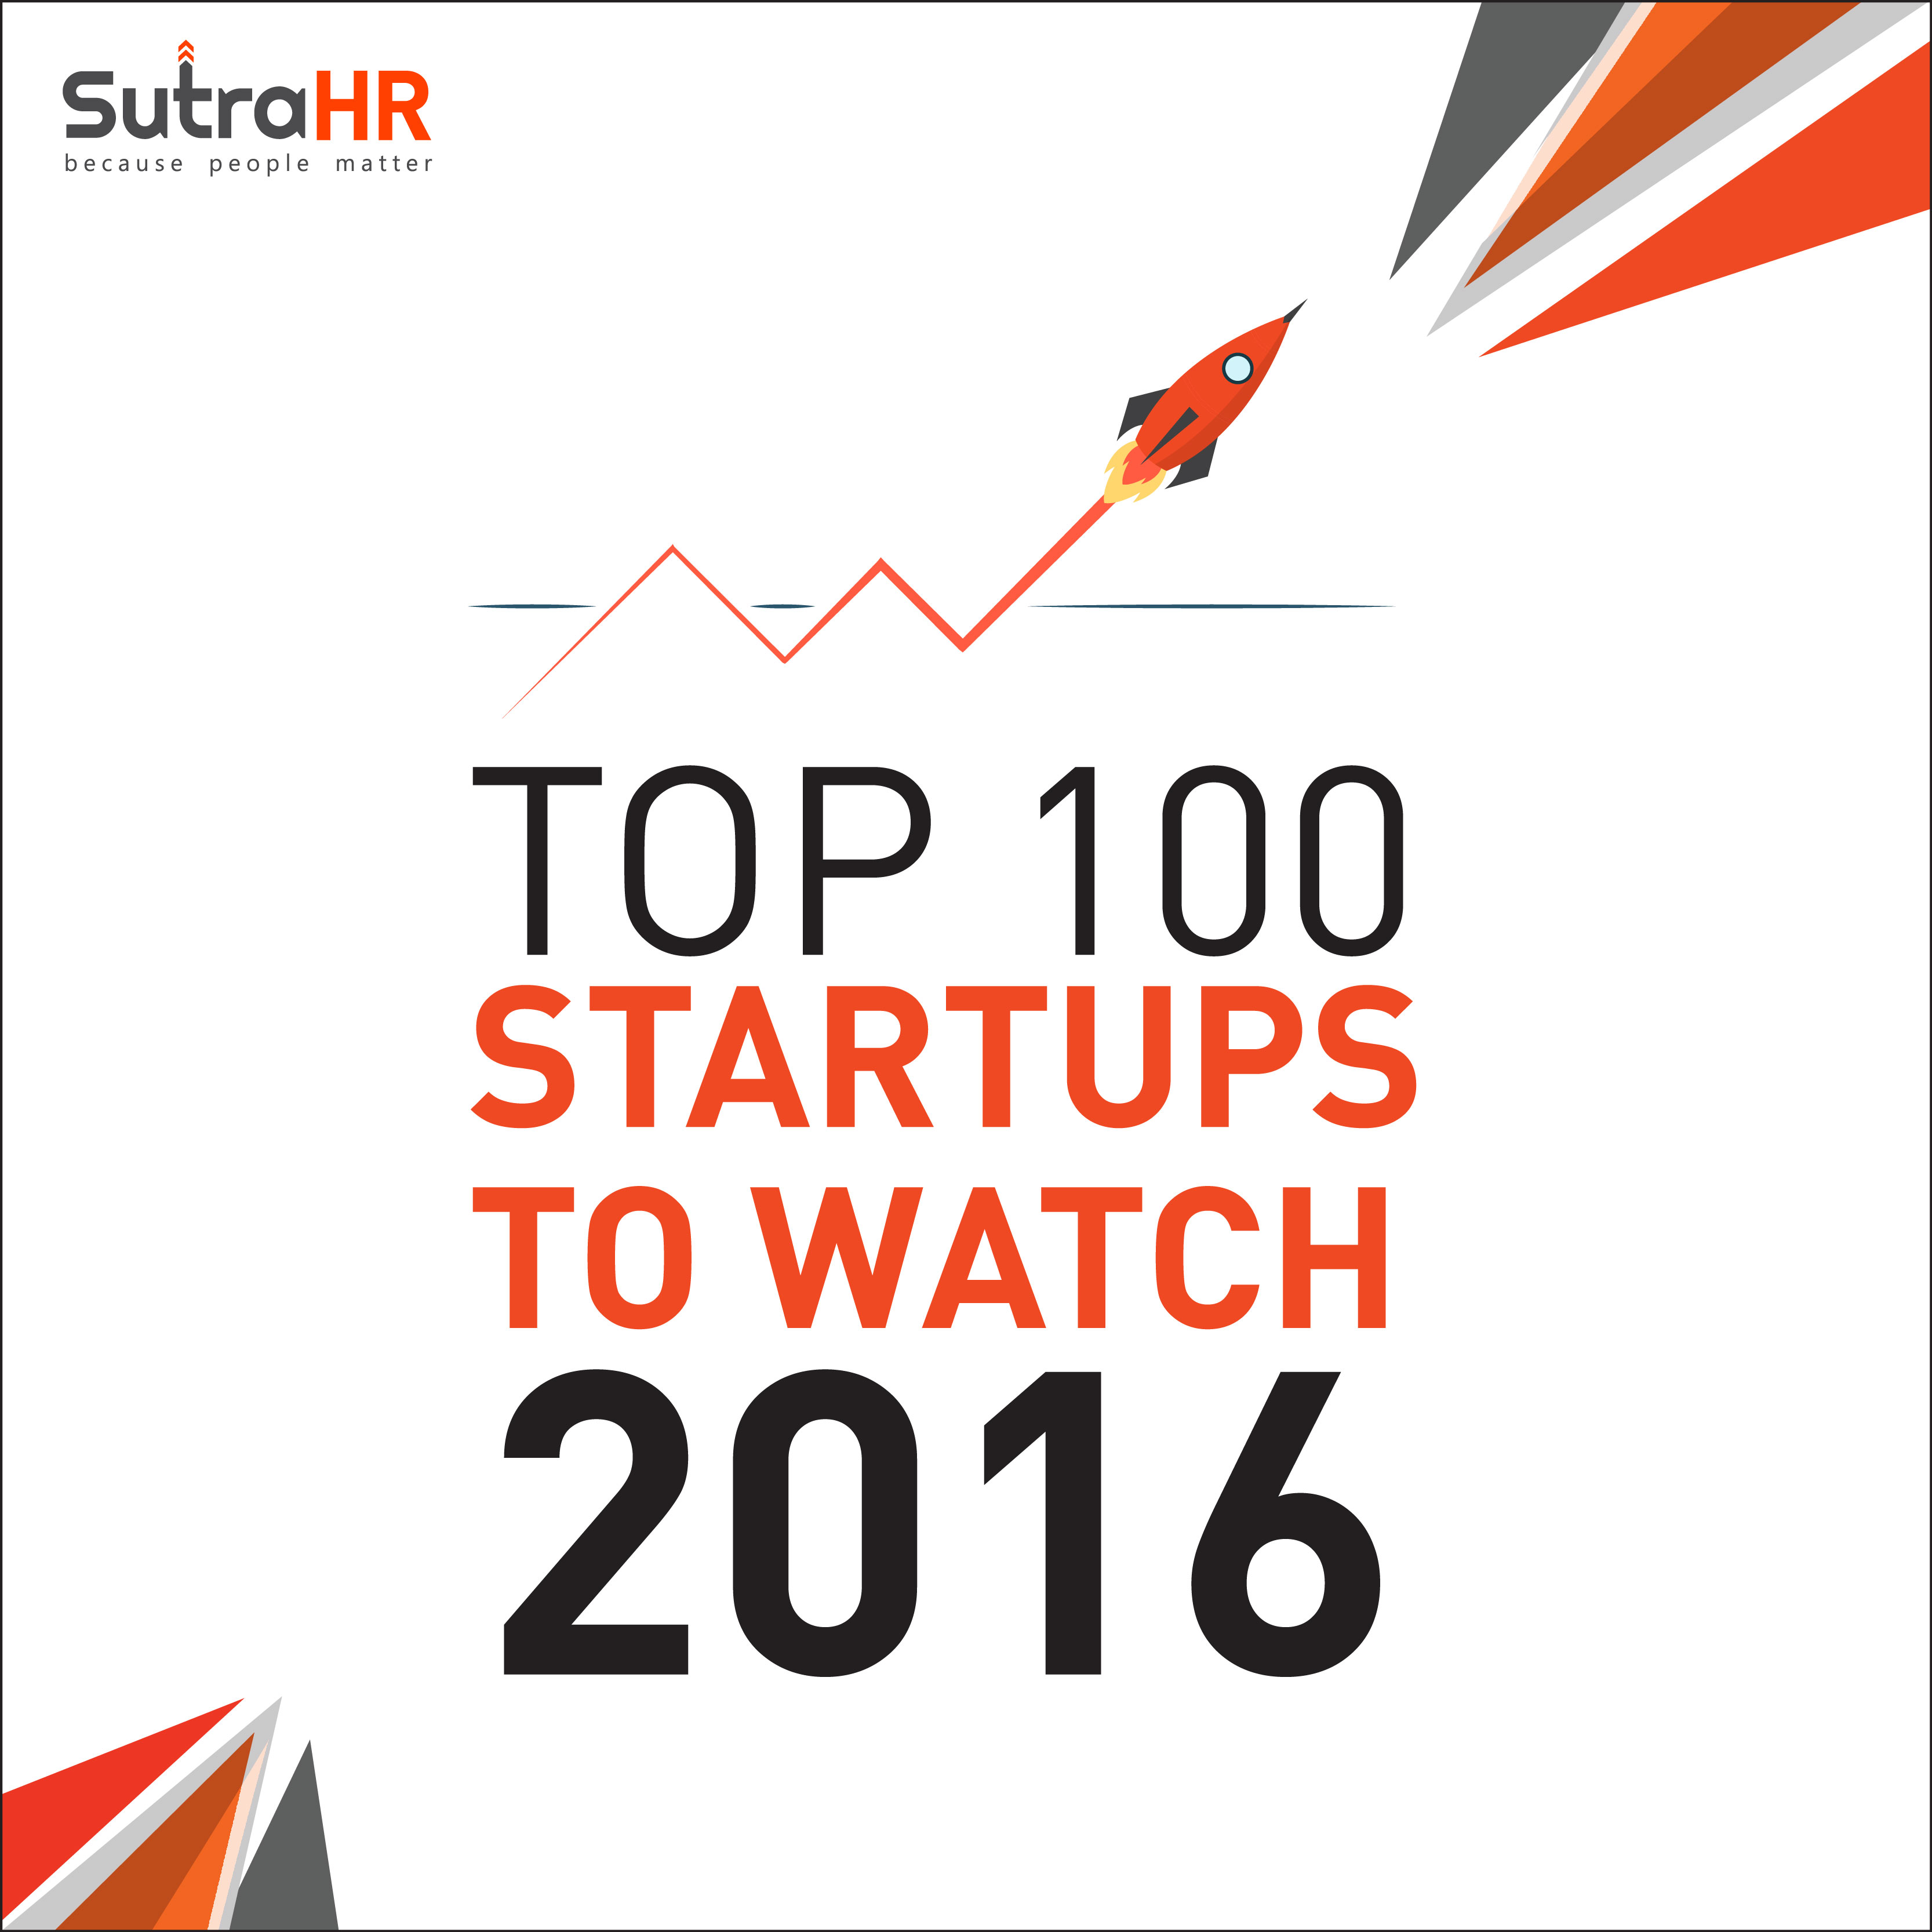 Top 100 Startup to Watch in 2016